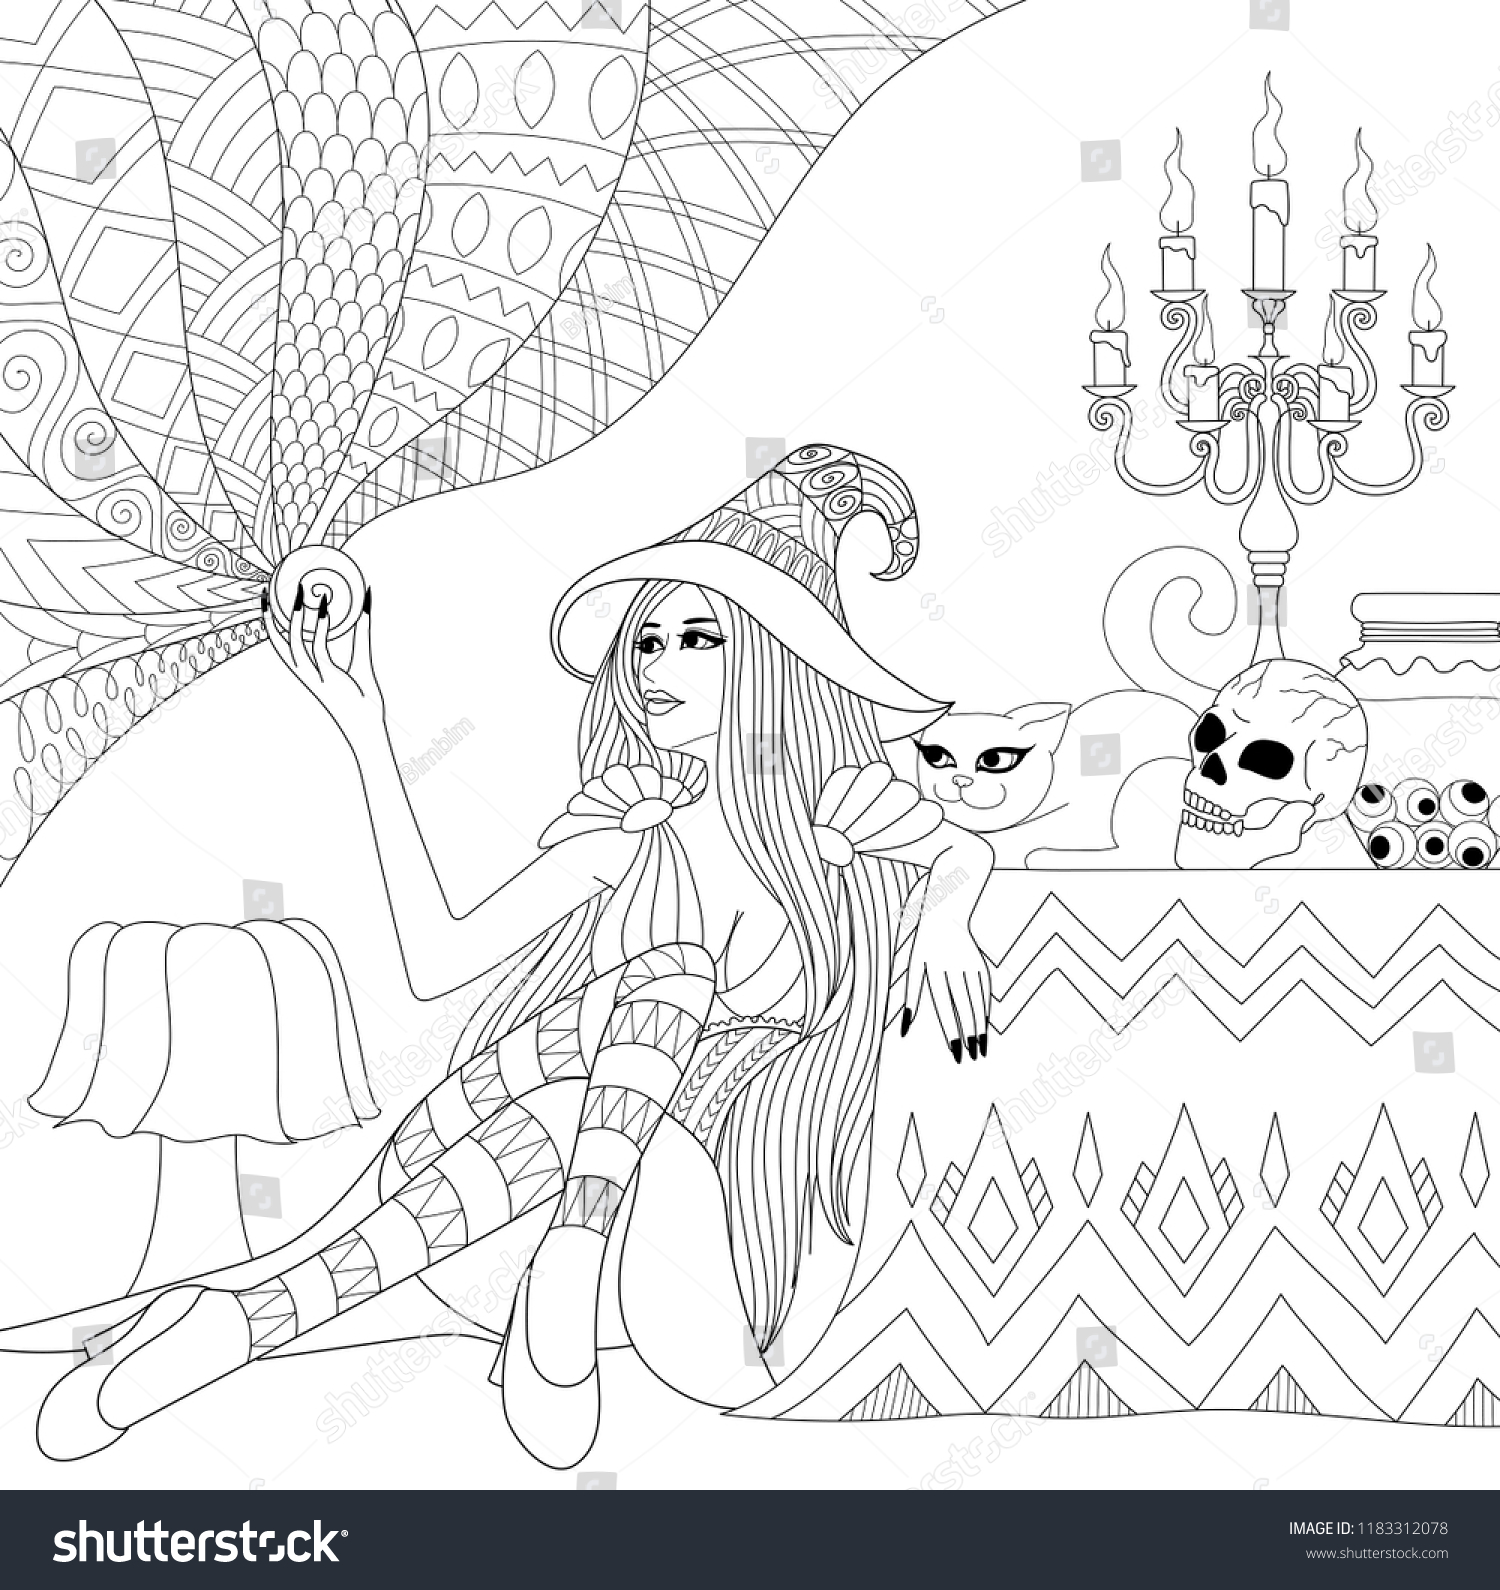 Colouring Pages Coloring Book Adults Teen | Holidays Stock Image